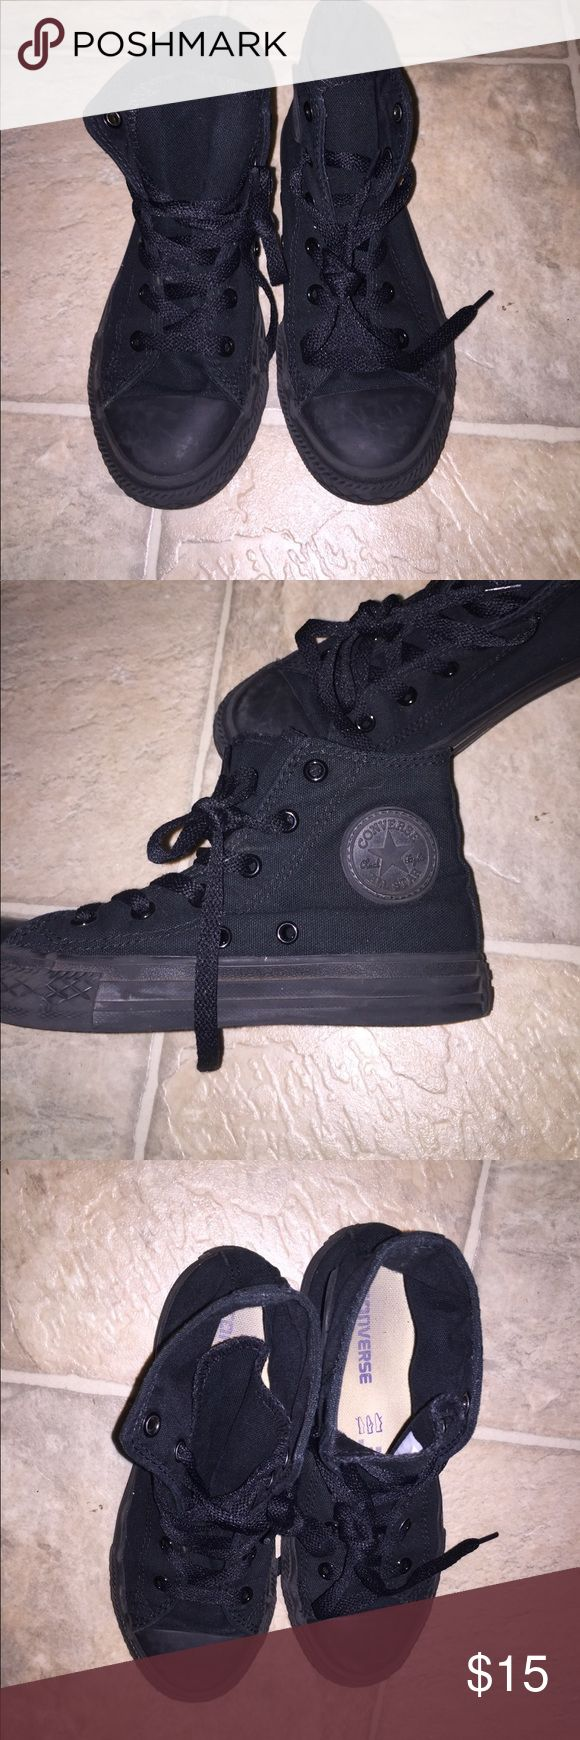 All Black Converse High Tops Excellent condition all black high tops Converse! Can be for a boy or girl, size 1. See pics for details. Converse Shoes Sneakers